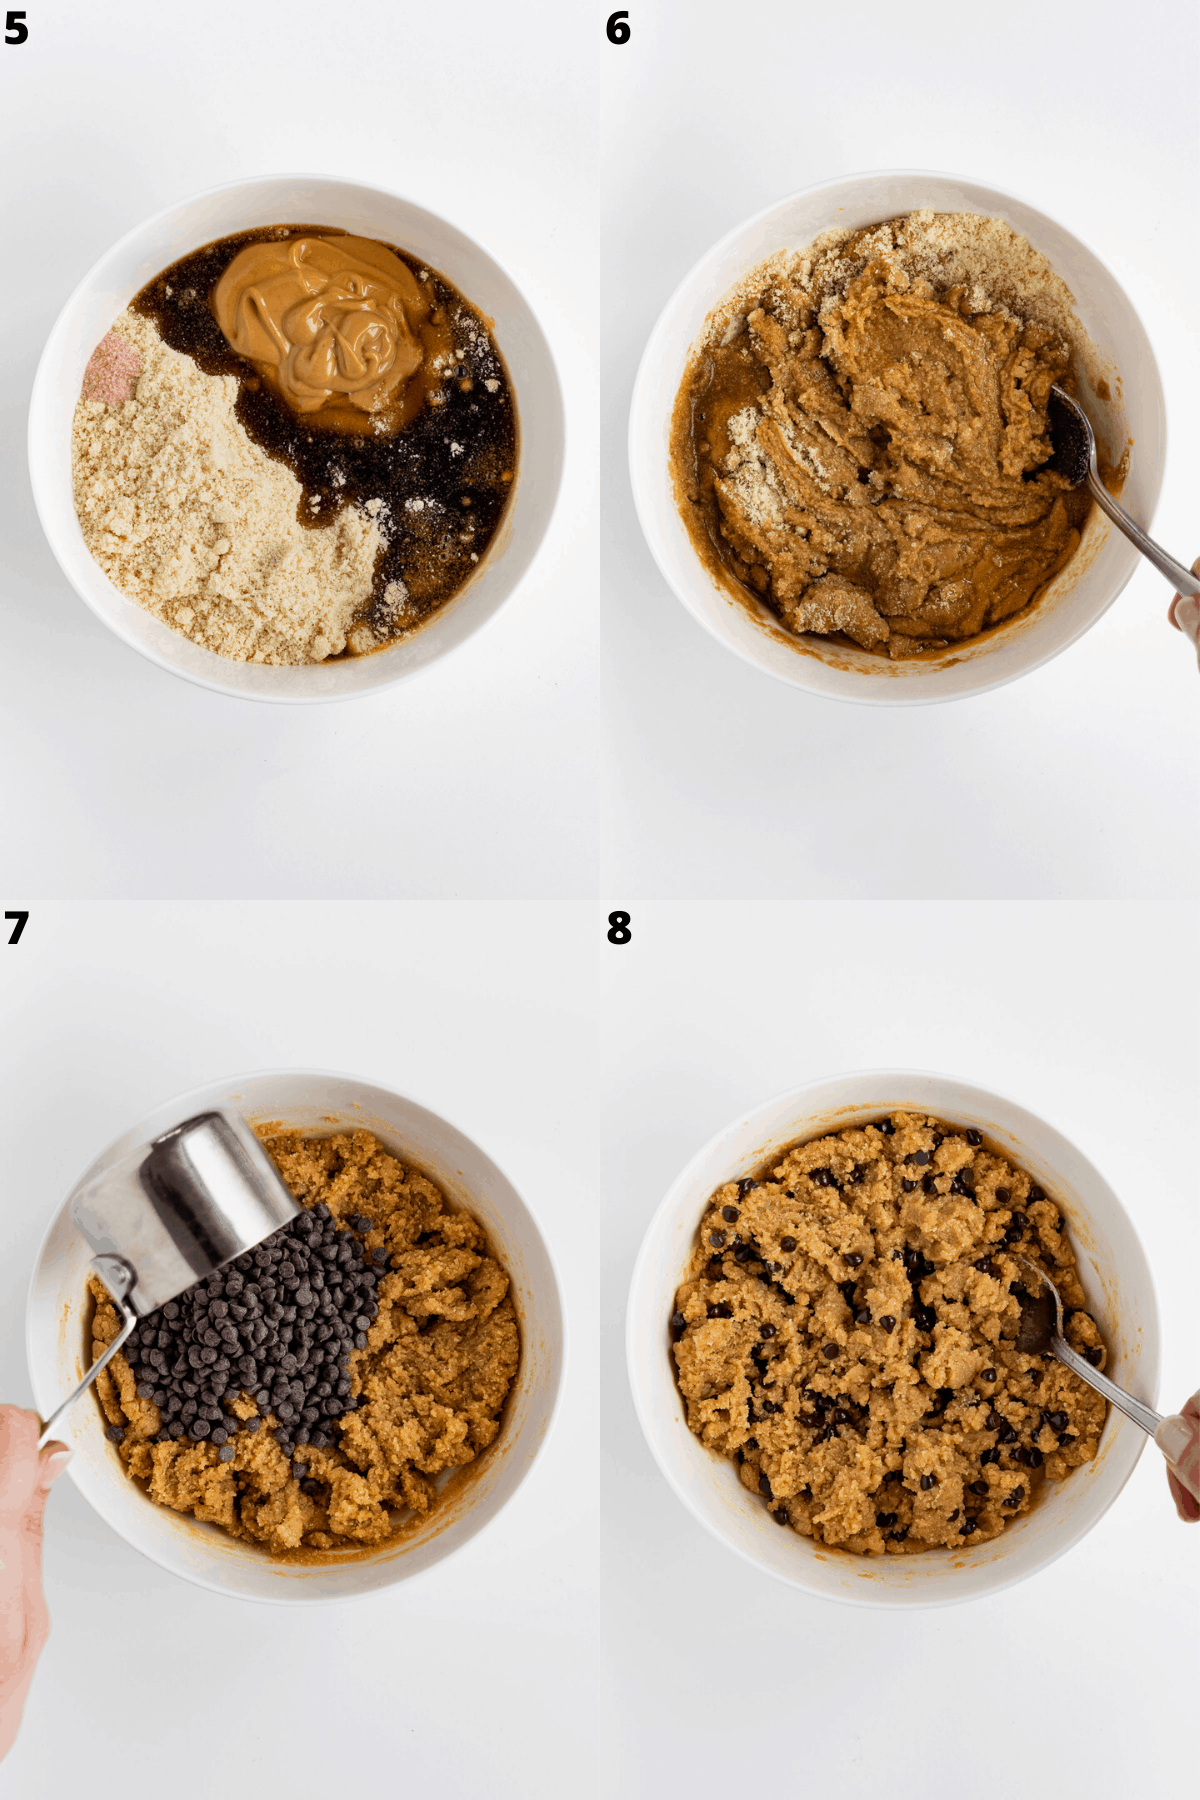 a 4-part collage mixing almond flour, nut butter, maple syrup, and chocolate chips inside a white bowl